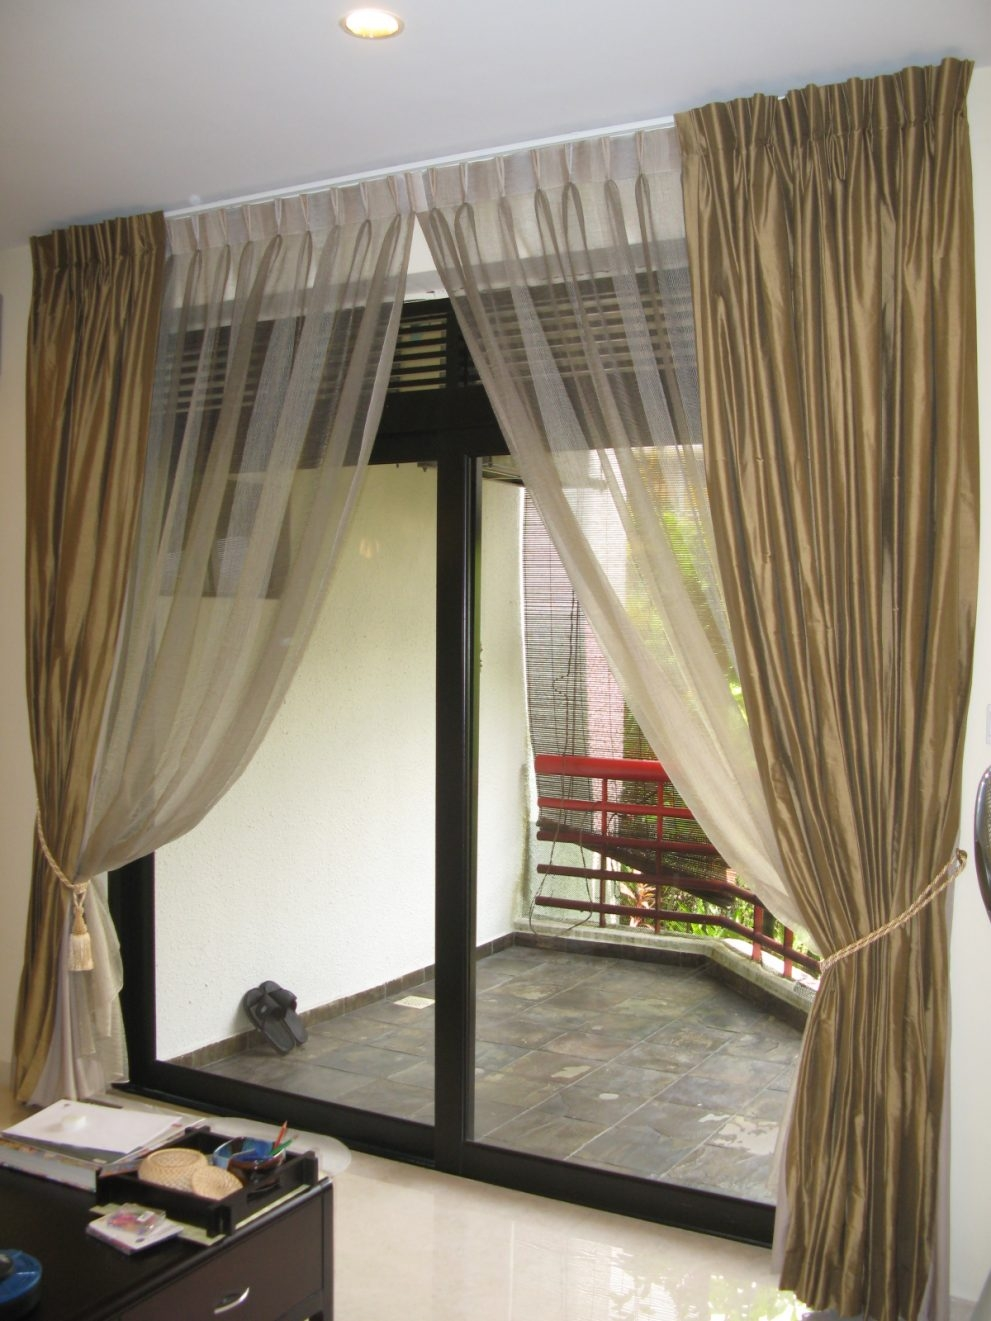 Cool Sliding Glass Door Curtains 141 Sliding Glass Door Curtains Within Sliding Glass Door Curtains (View 9 of 25)